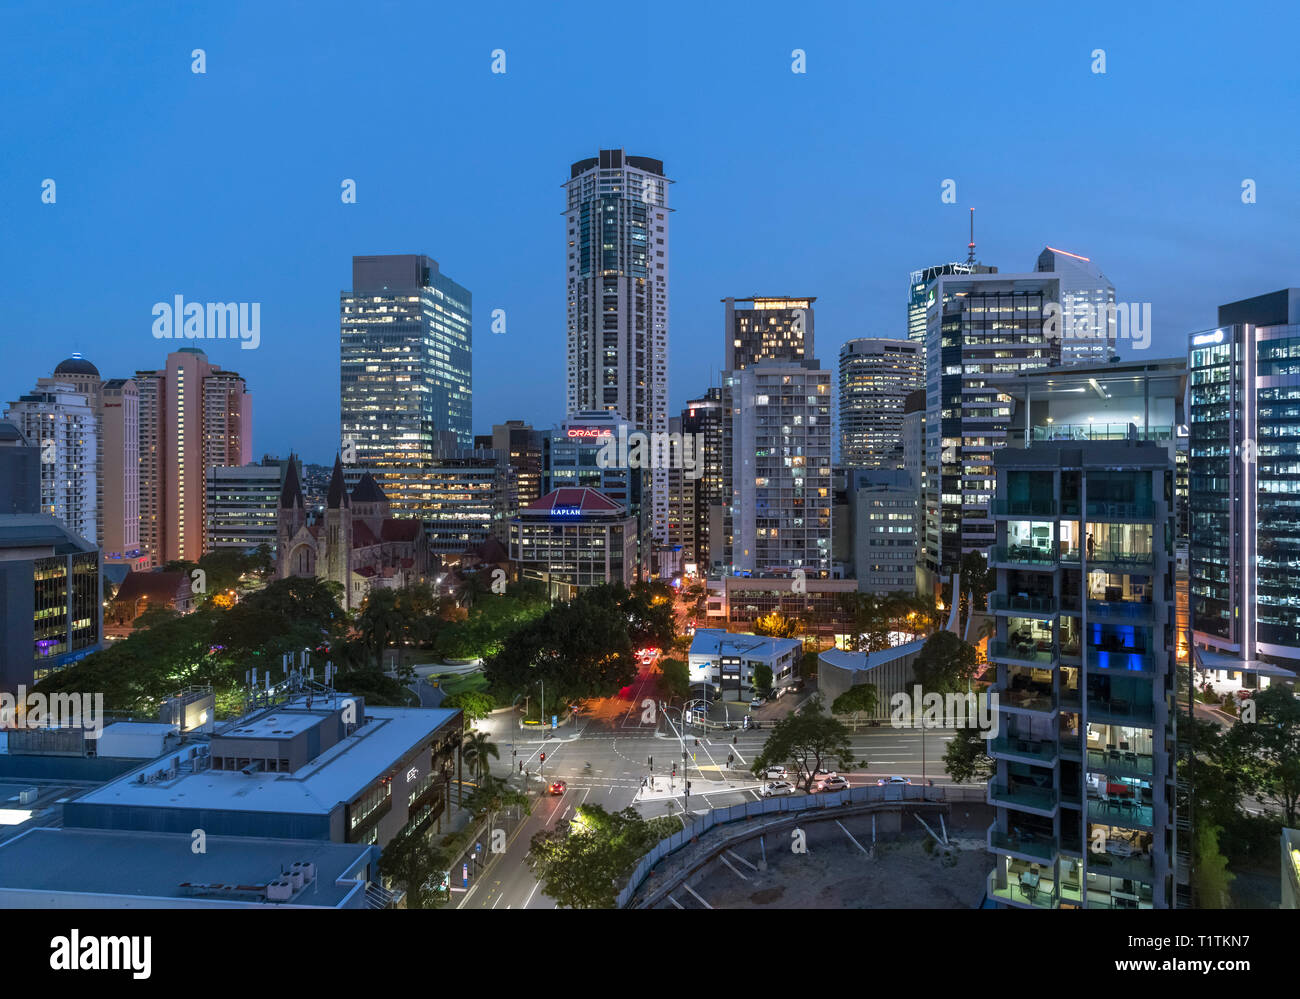 The skyline of the Central Business District (CBD) at night looking towards Cathedral Square, Brisbane, Queensland, Australia - Stock Image